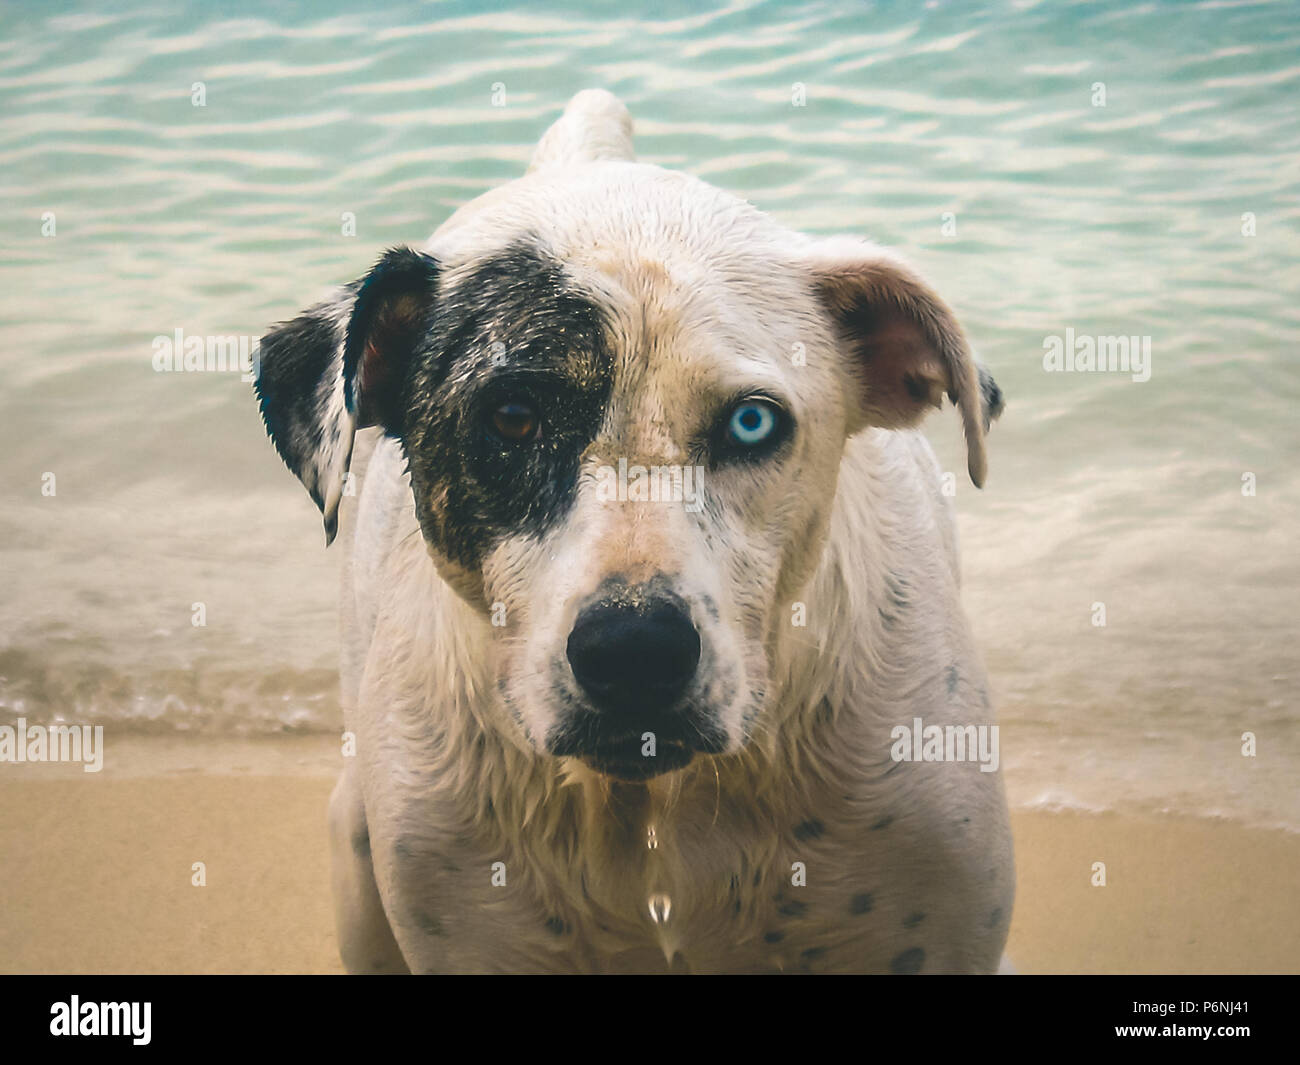 Close up of a dog's head with two different colored eyes on the beach. - Stock Image